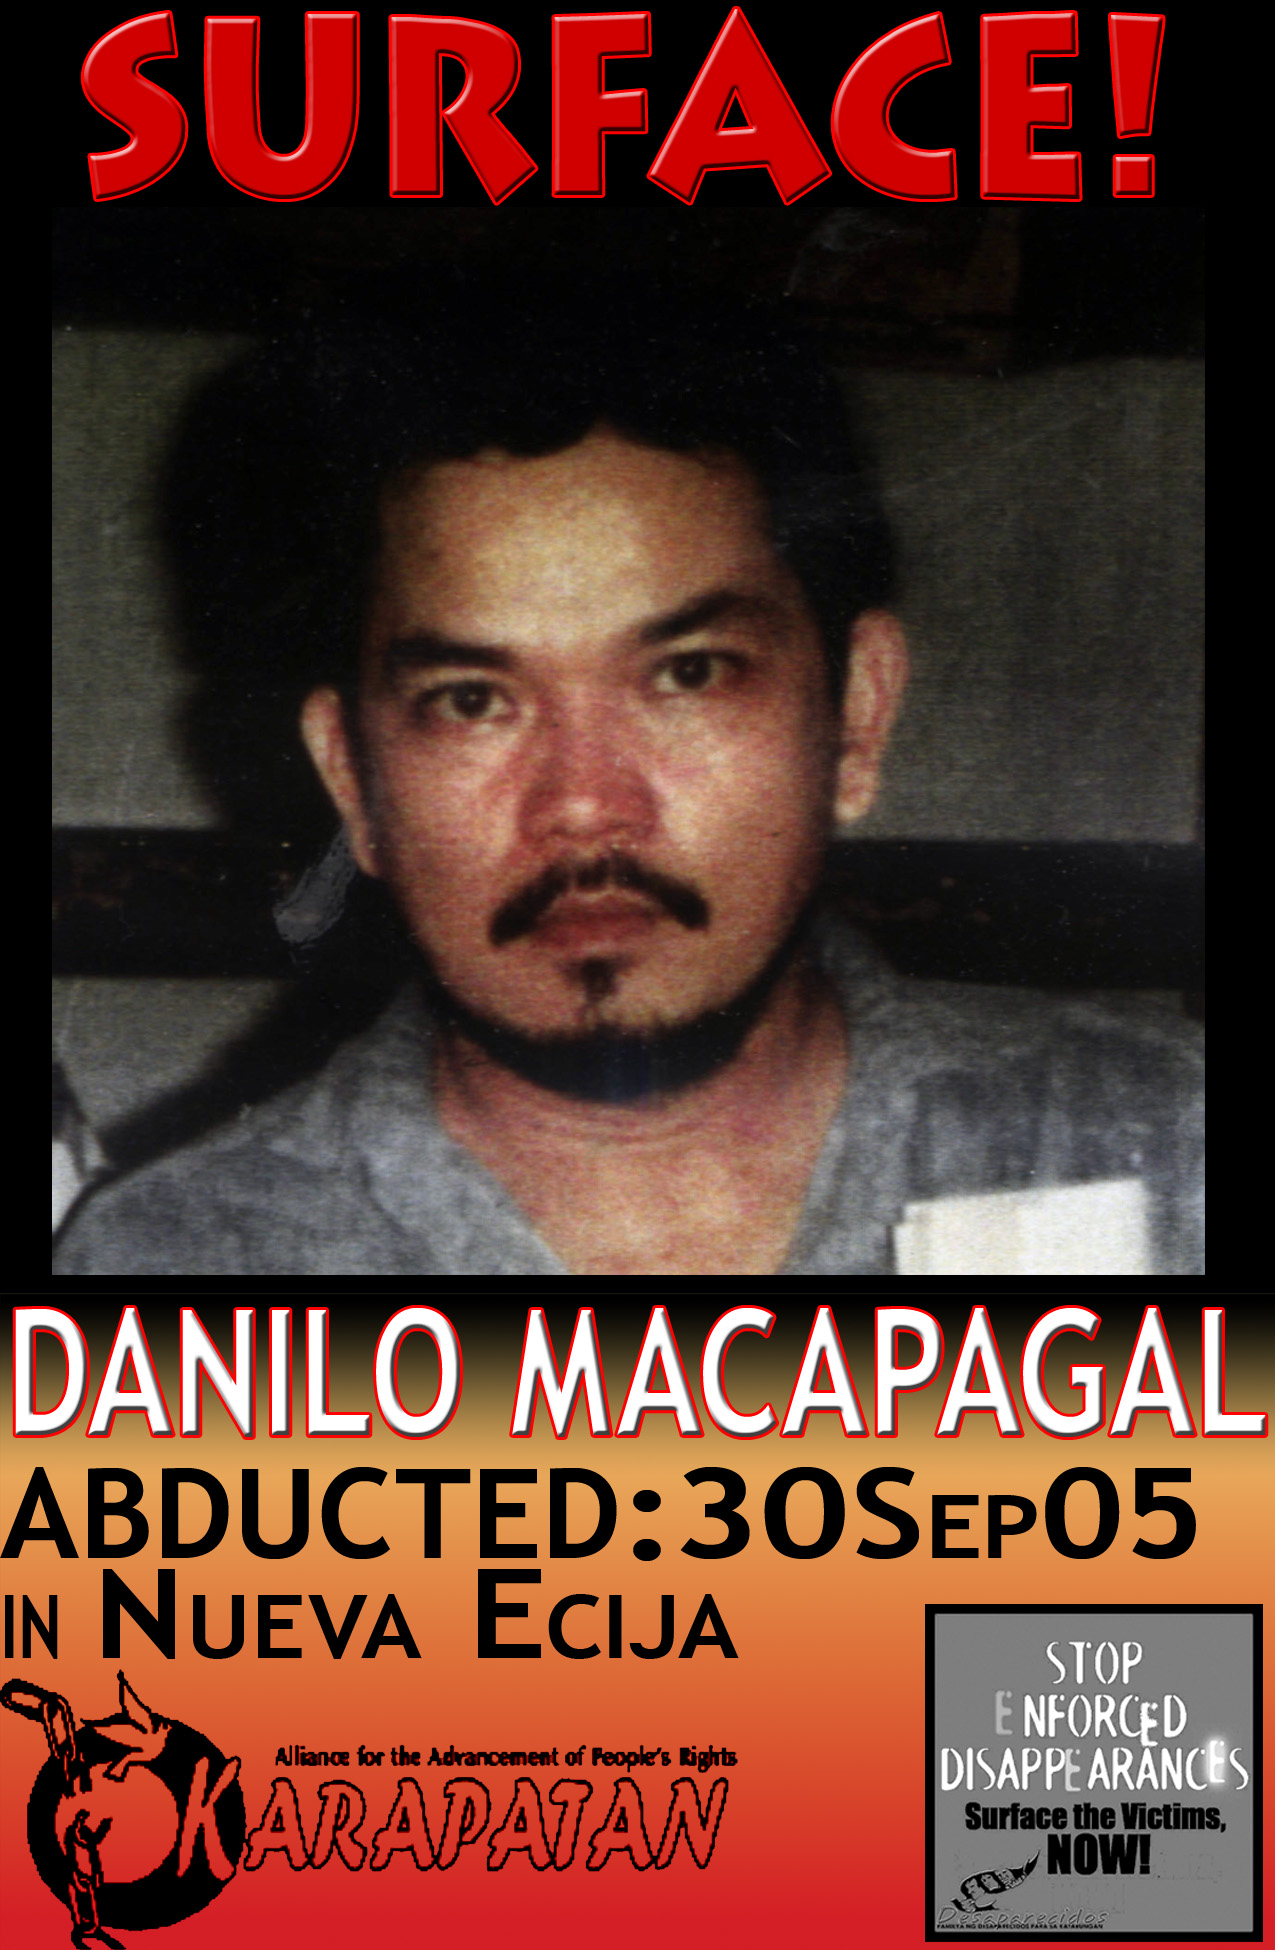 Photo of Danilo Macapagal